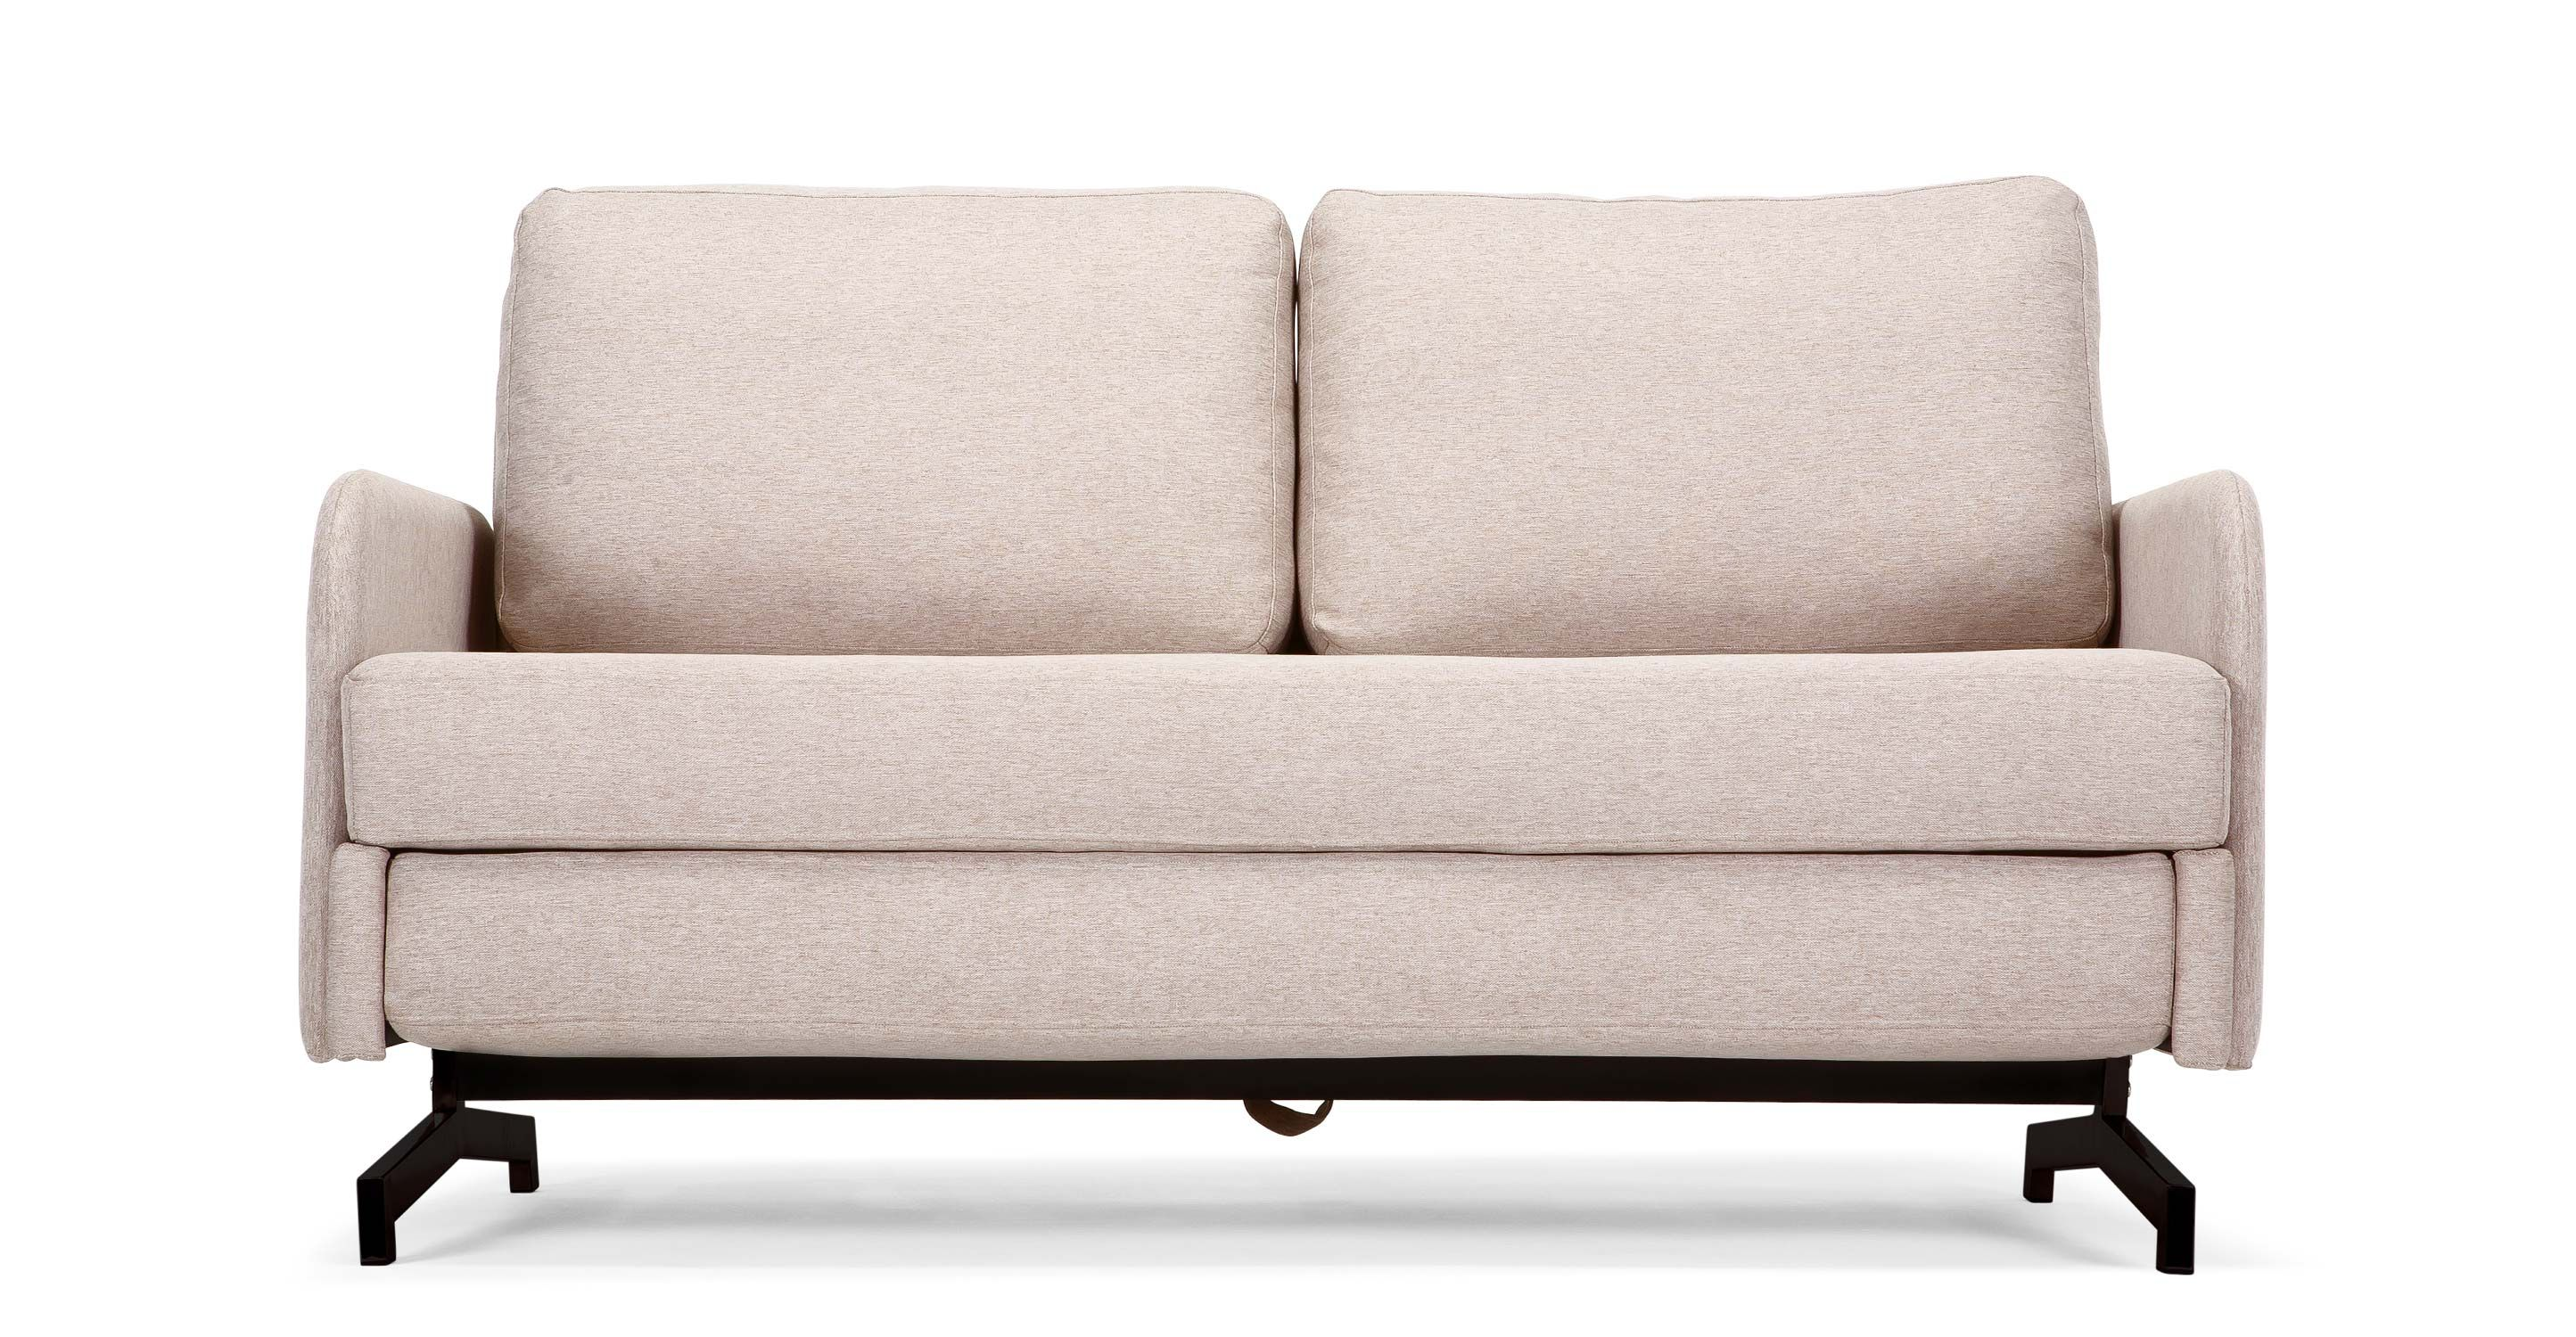 Motti Sofa Bed in pipit beige   made.com   Canapé lit, Lit ...